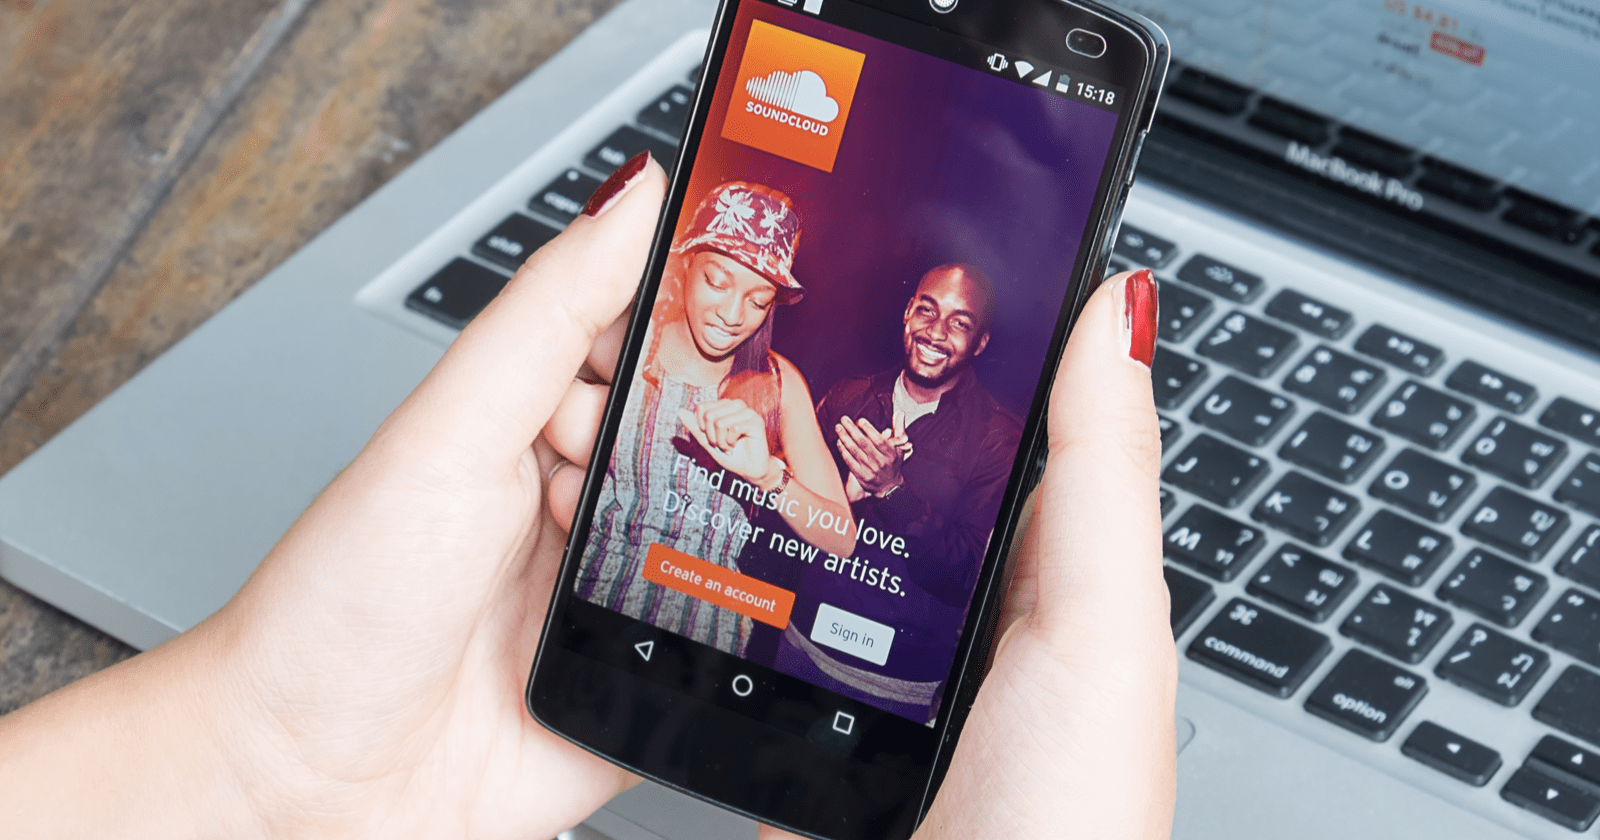 Instagram Lets Users Share Audio from SoundCloud to Stories - Search